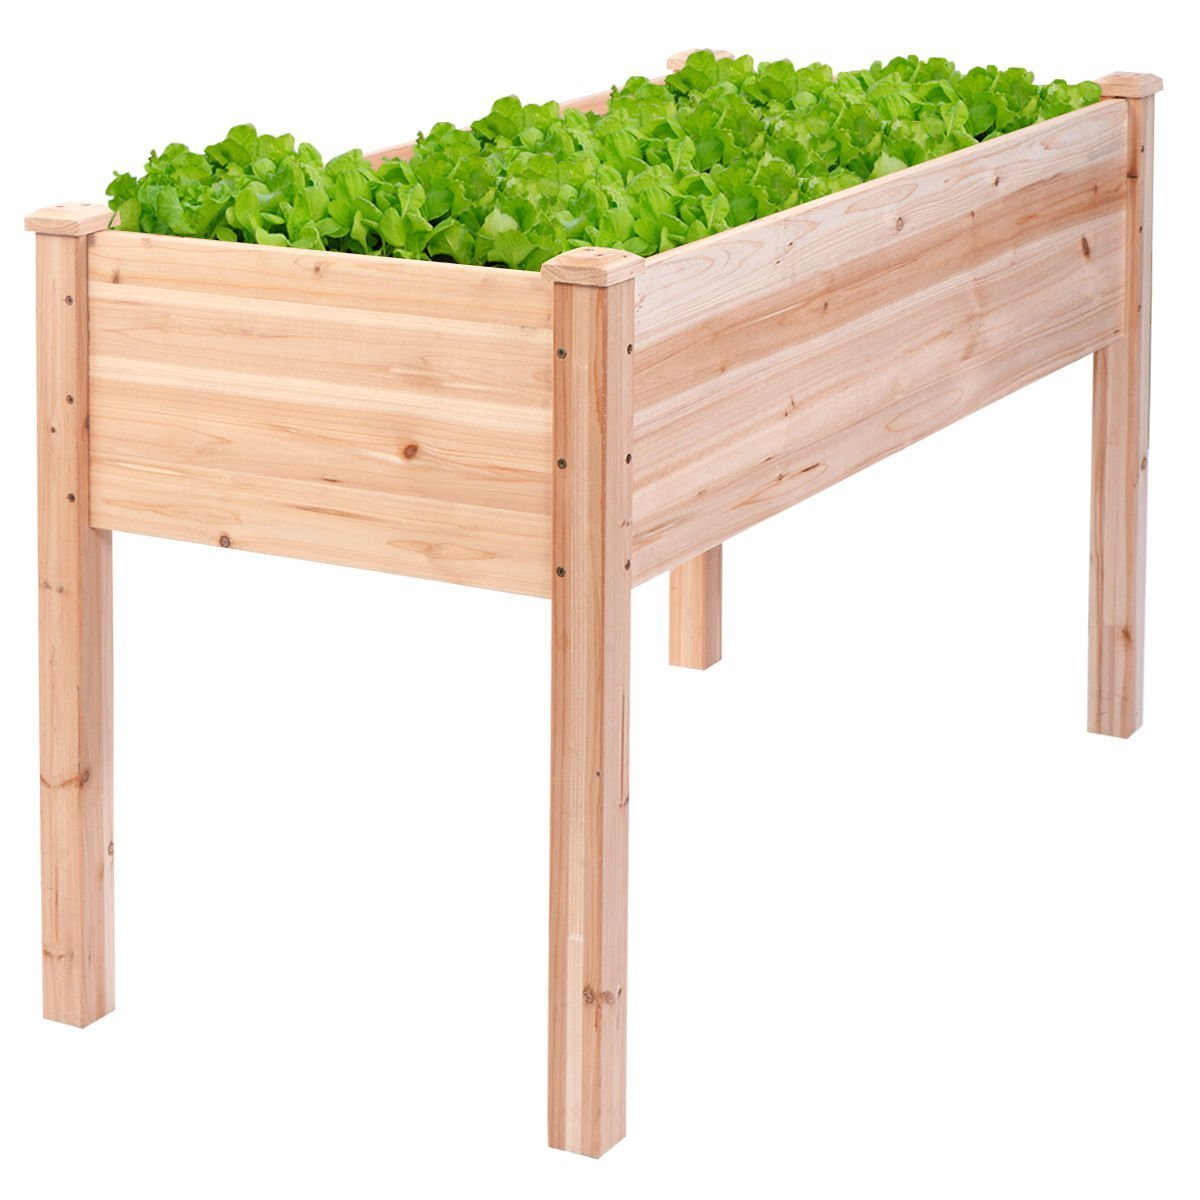 Giantex Raised Garden Bed Vegetables Fruits Grow Planter Patio Yard Potato Onion Greenes Herb Flower Heavy Duty Wooden Frame Gardening Planting Beds Durable Outdoor Cedar Wood Elevated Planter